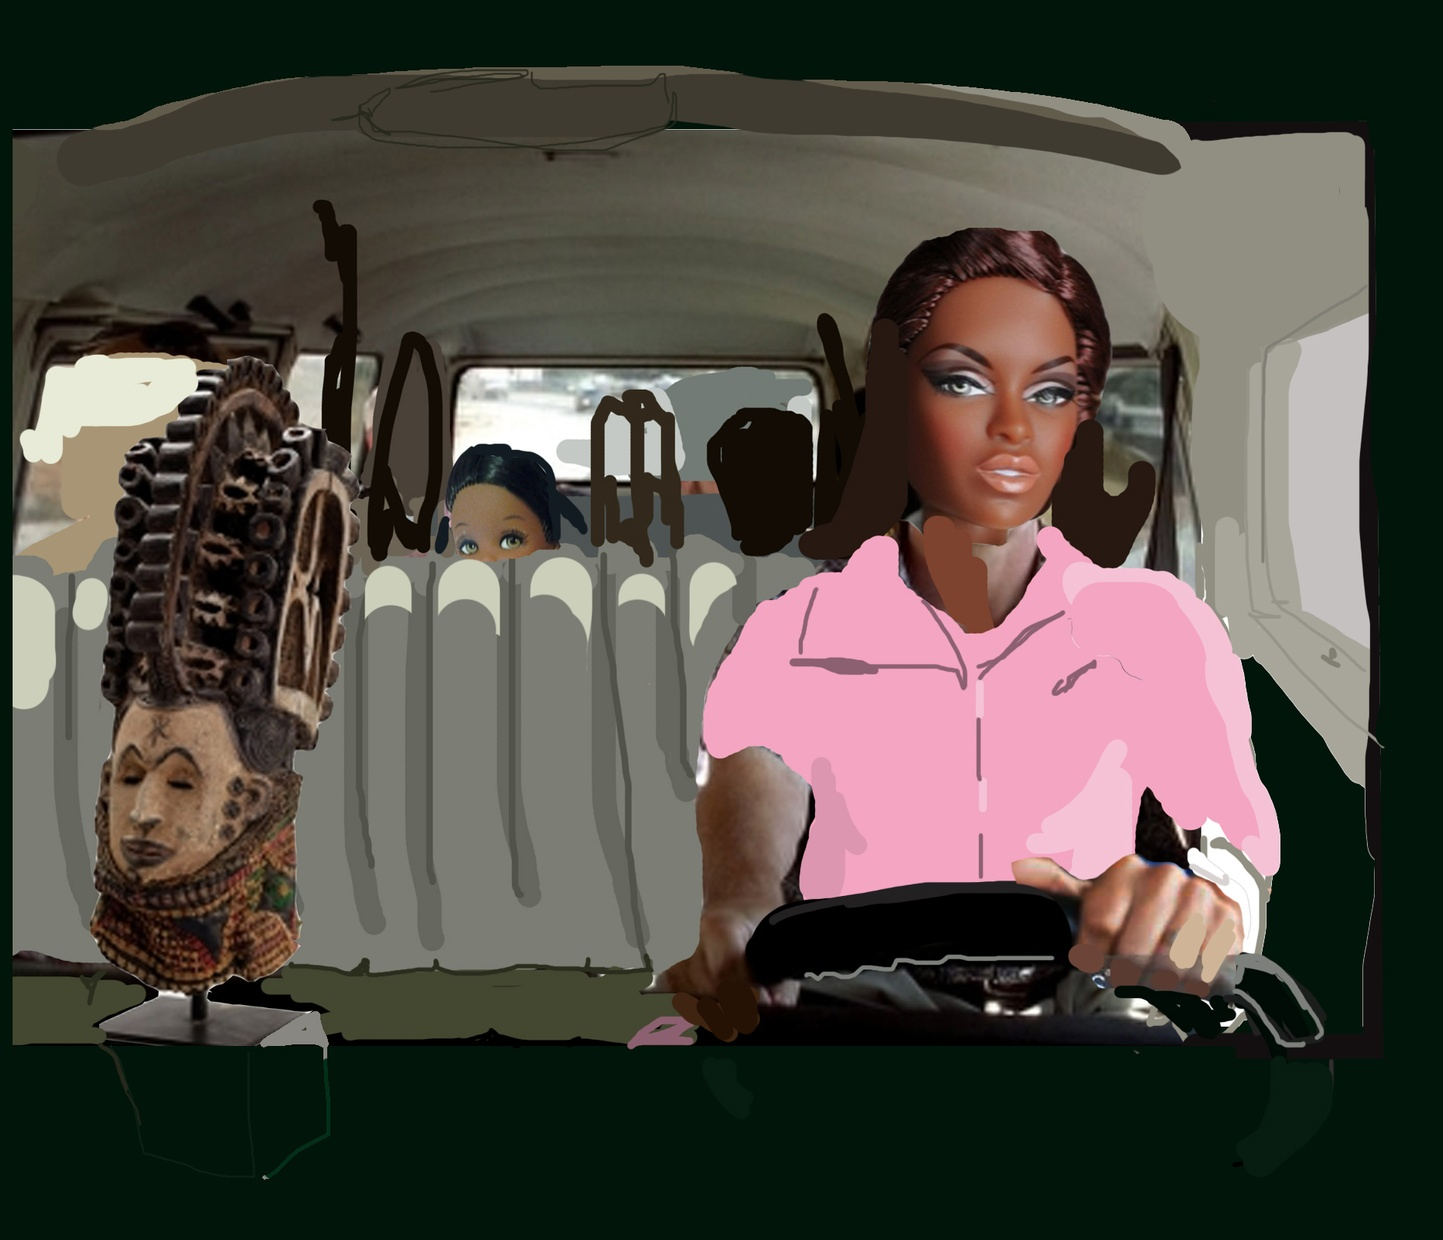 A person with a black doll head is facing forward in a driver seat with drawings covering their body and their surroundings, a doll and a sculpture pasted near them.